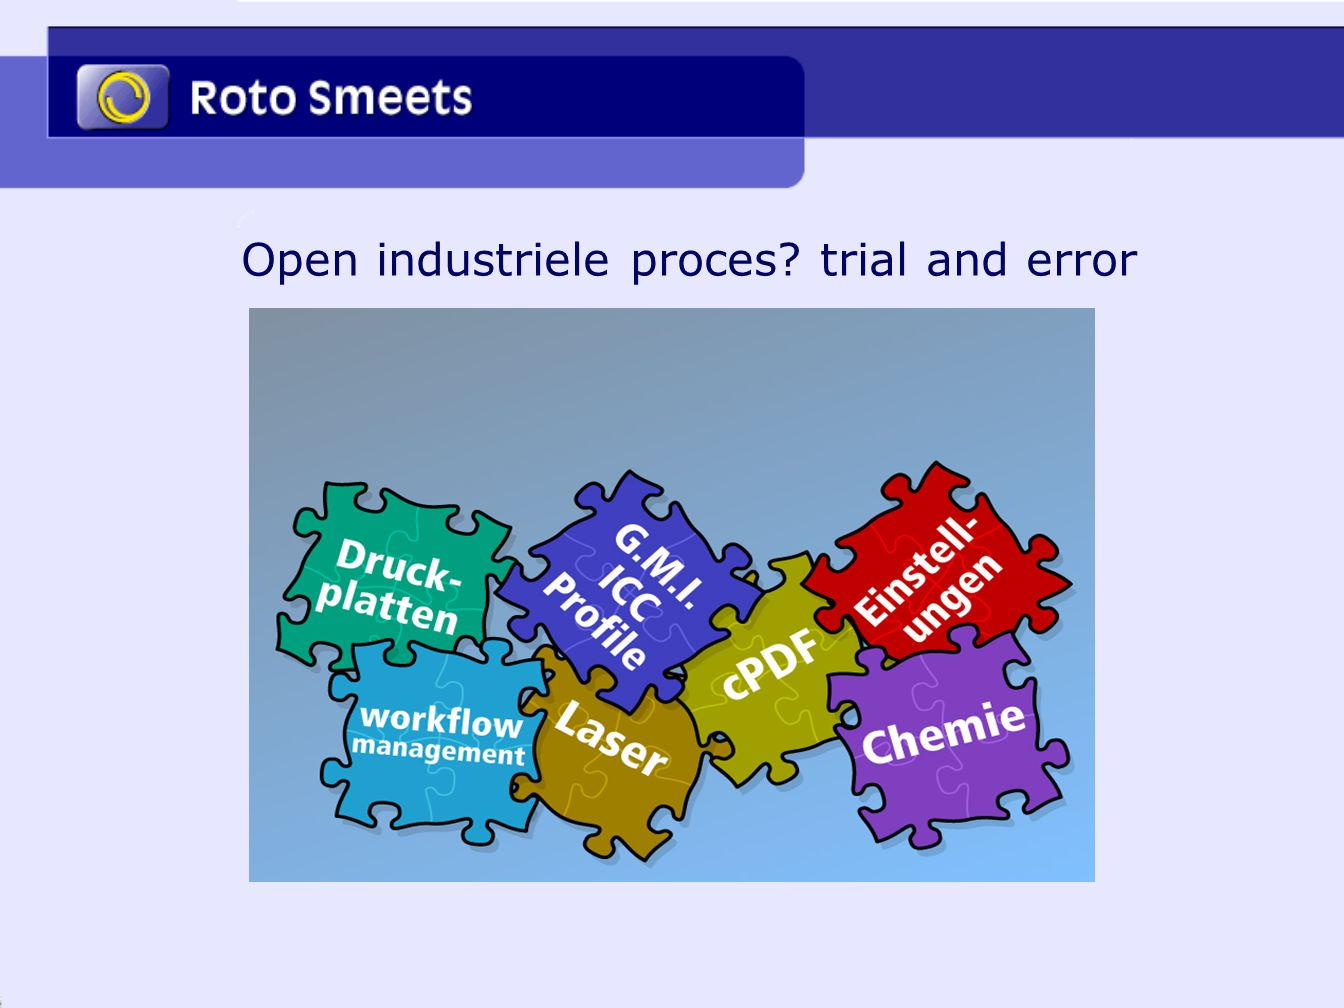 Open industriele proces trial and error